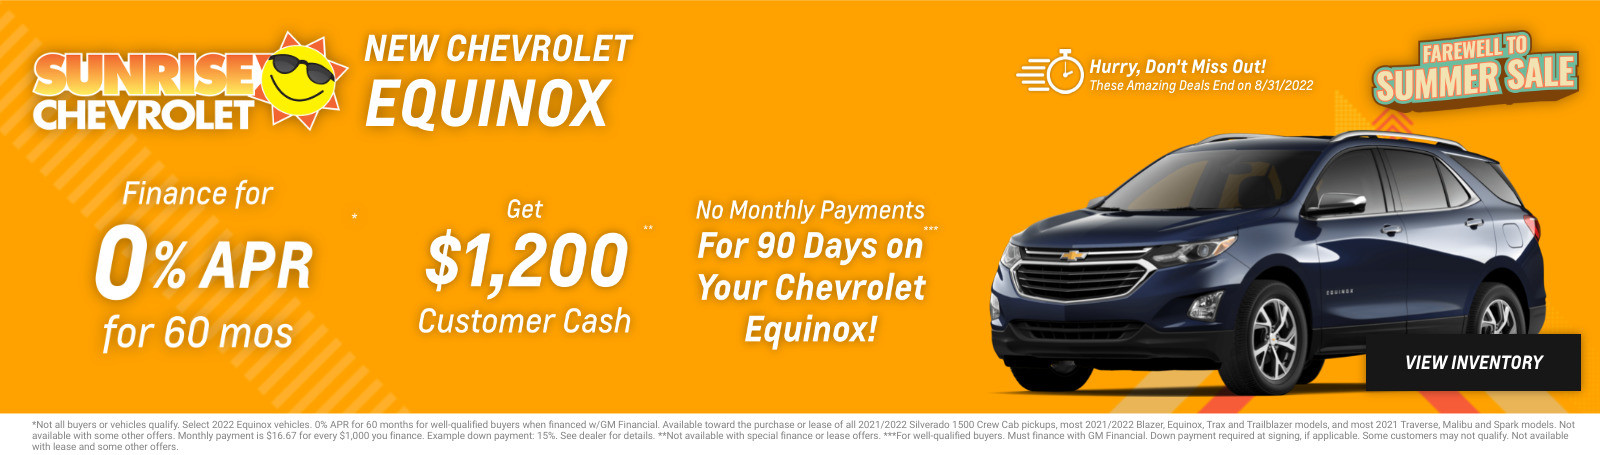 New Chevrolet Equinox Current Deals and Offers in Chicago, IL